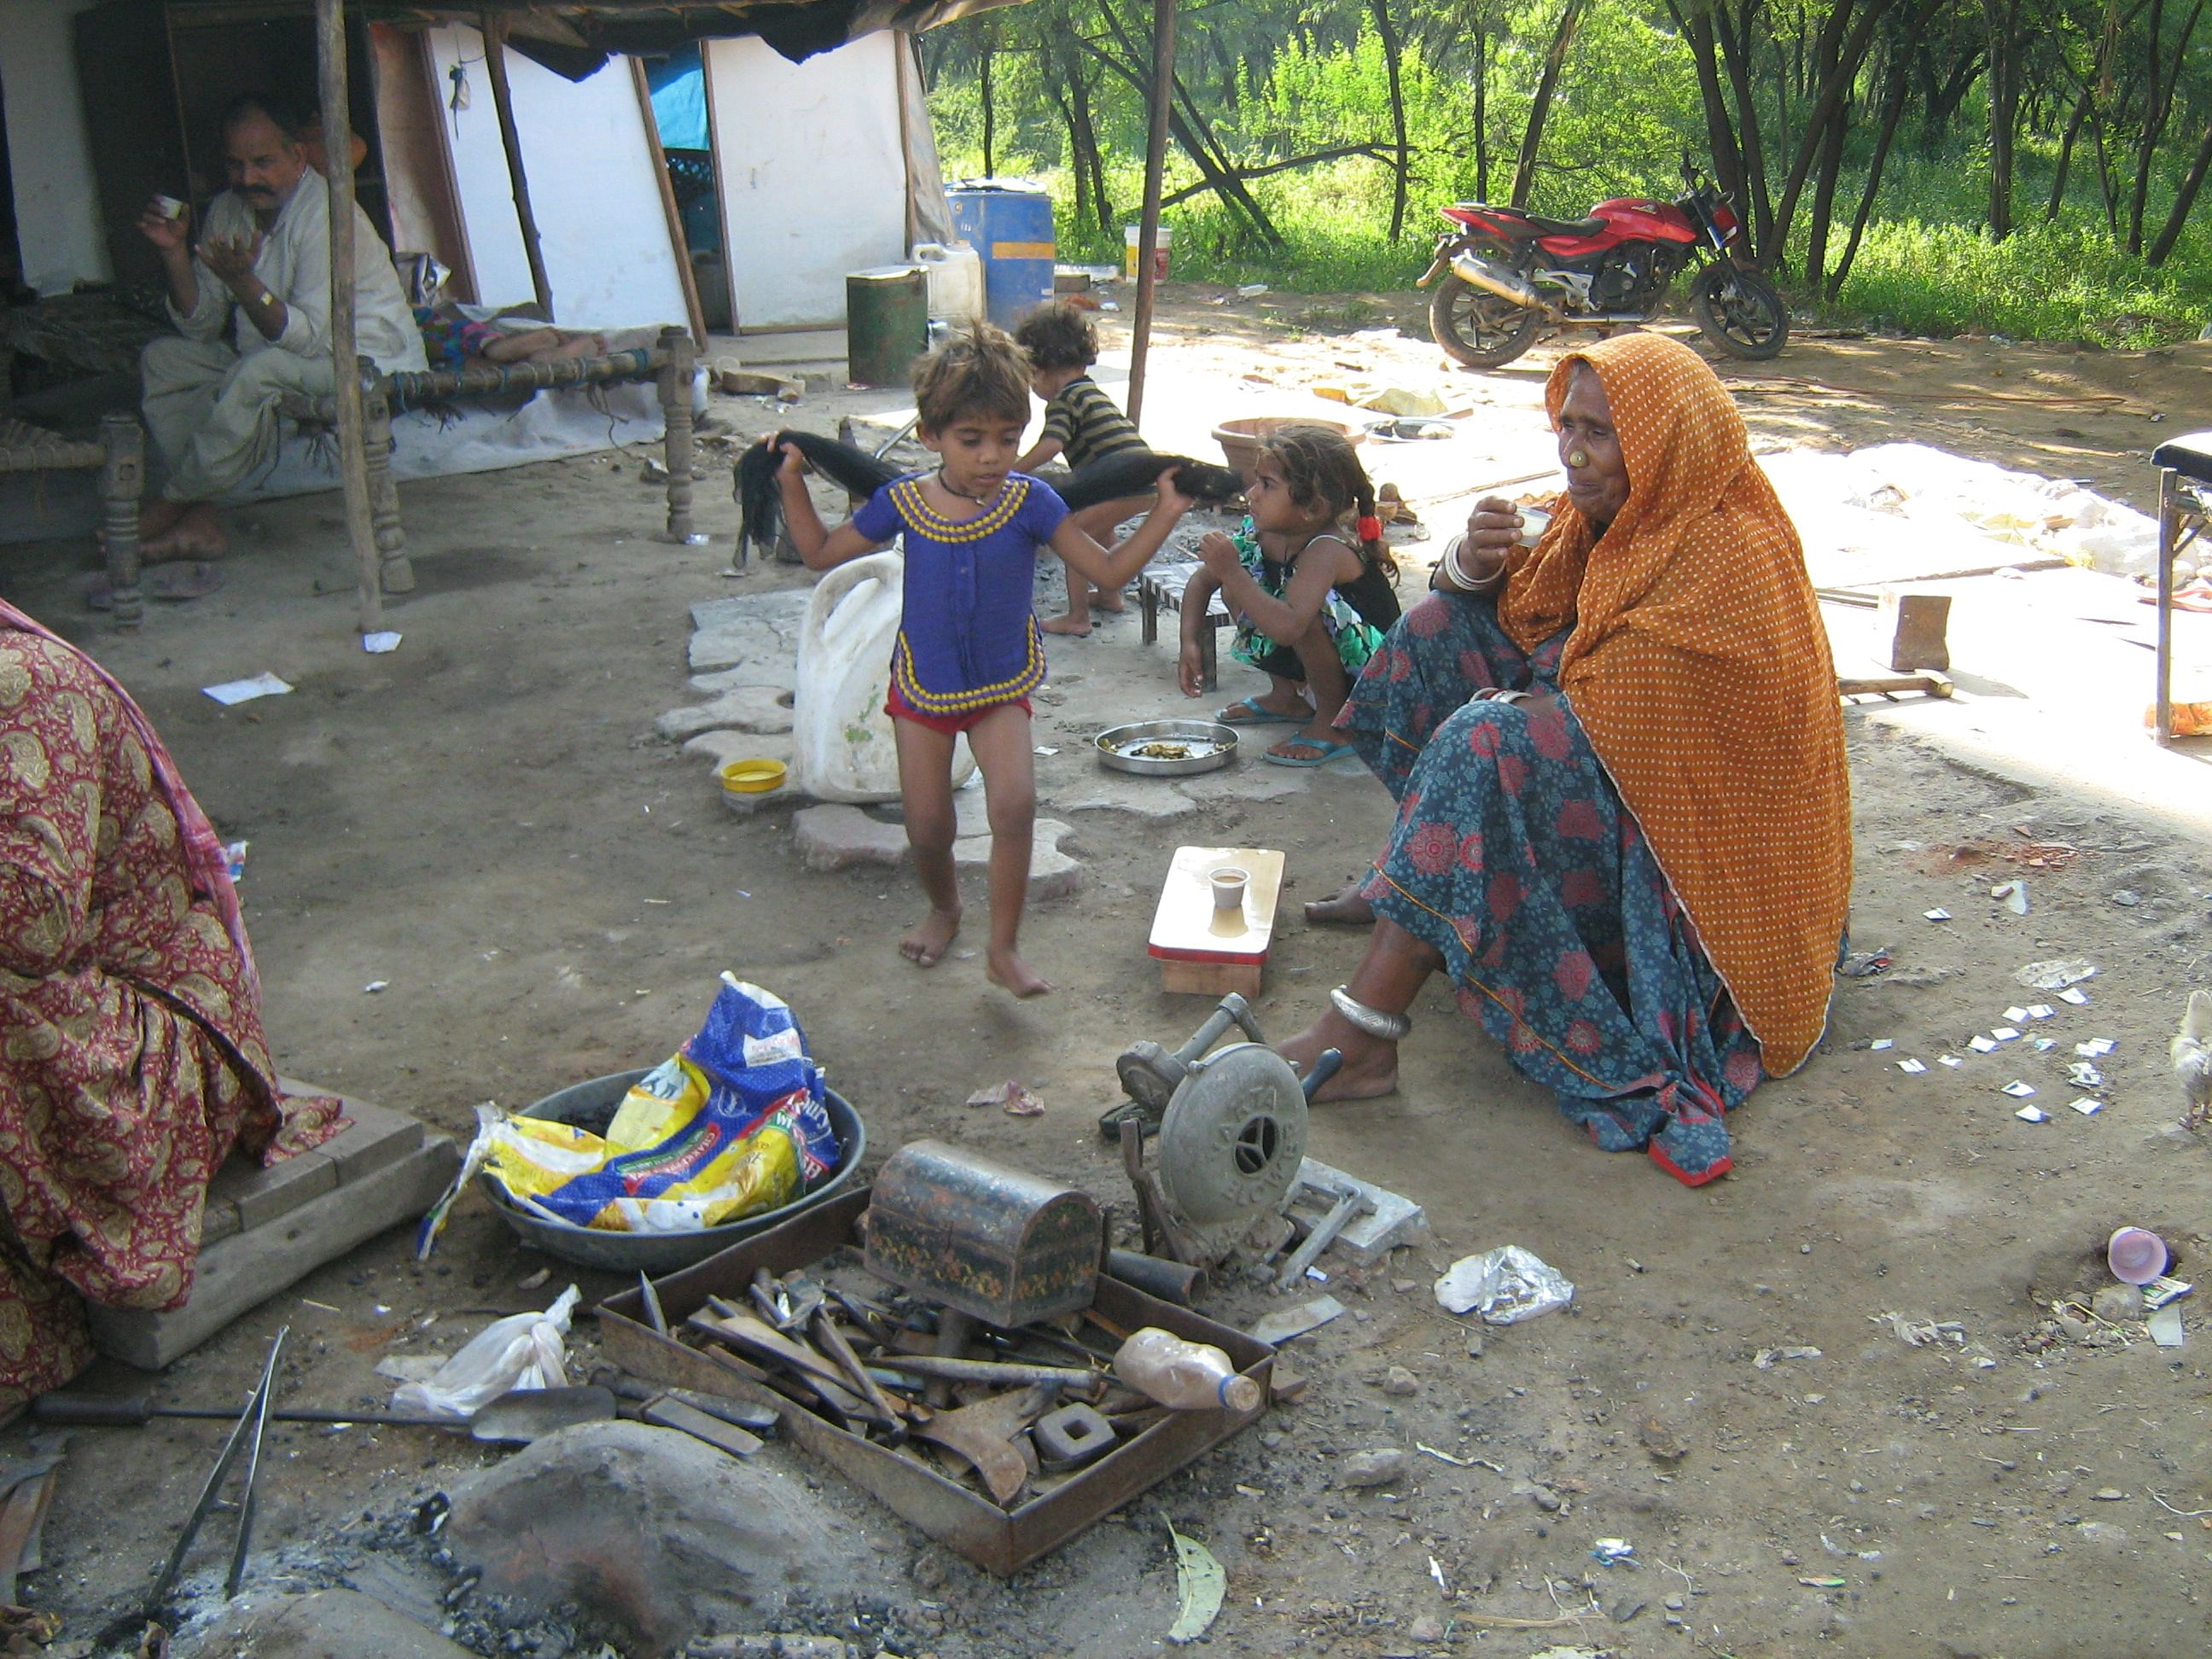 For women, living on the streets is a challenge each day – whether it is cooking a meal by the roadside, finding a place to bathe or fending off sexual predators. (Credit: Anuradha Dutt\WFS)